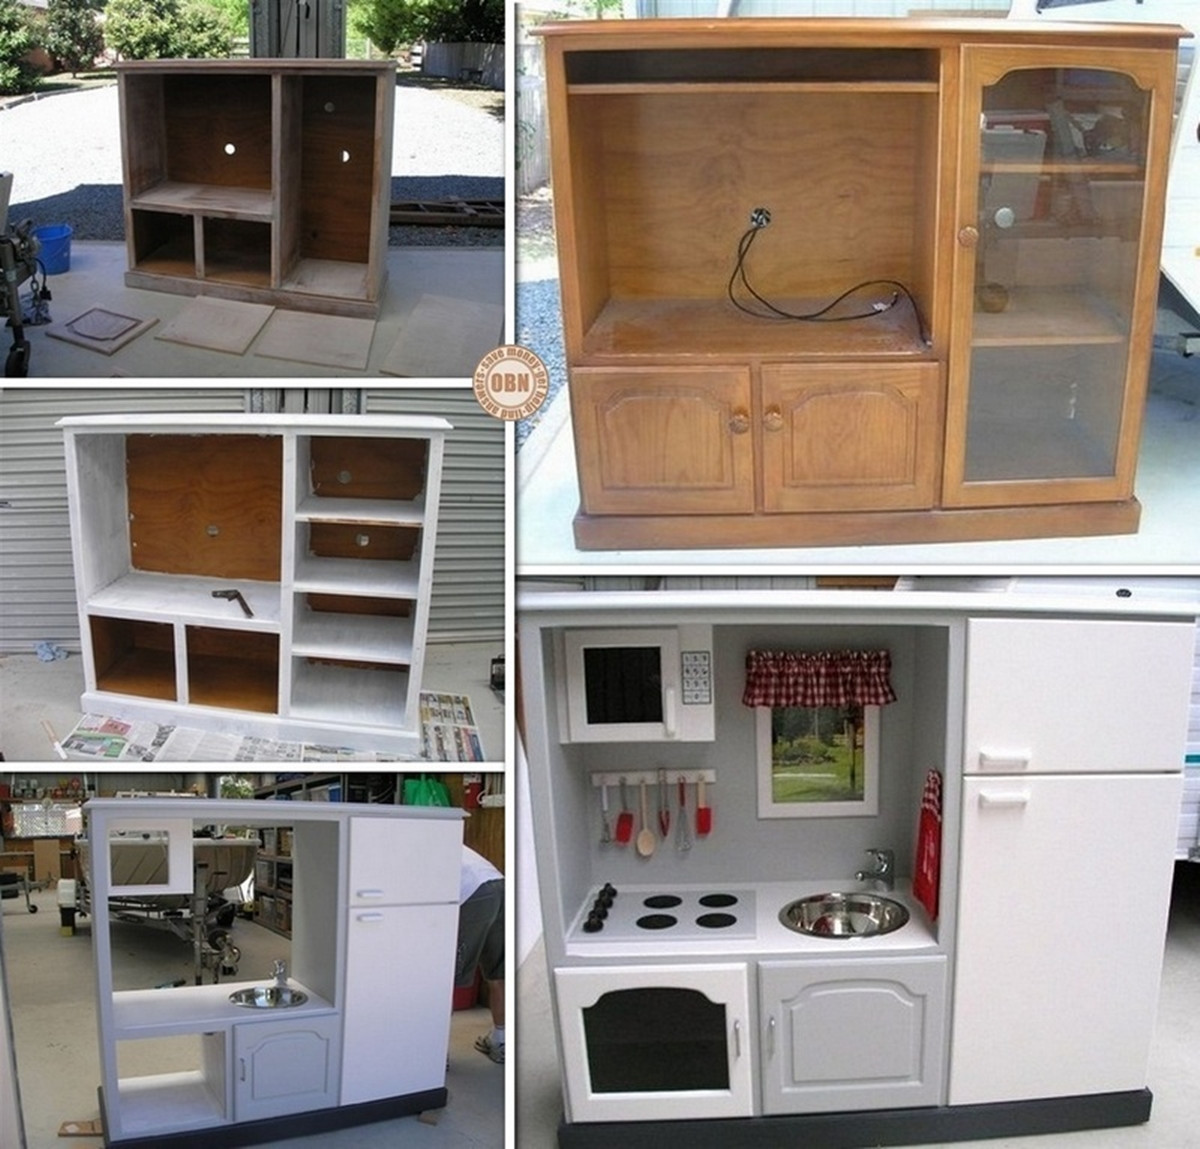 Best ideas about DIY Kids Kitchens . Save or Pin Wonderful DIY Kids Play Kitchen from Old Nightstand Now.